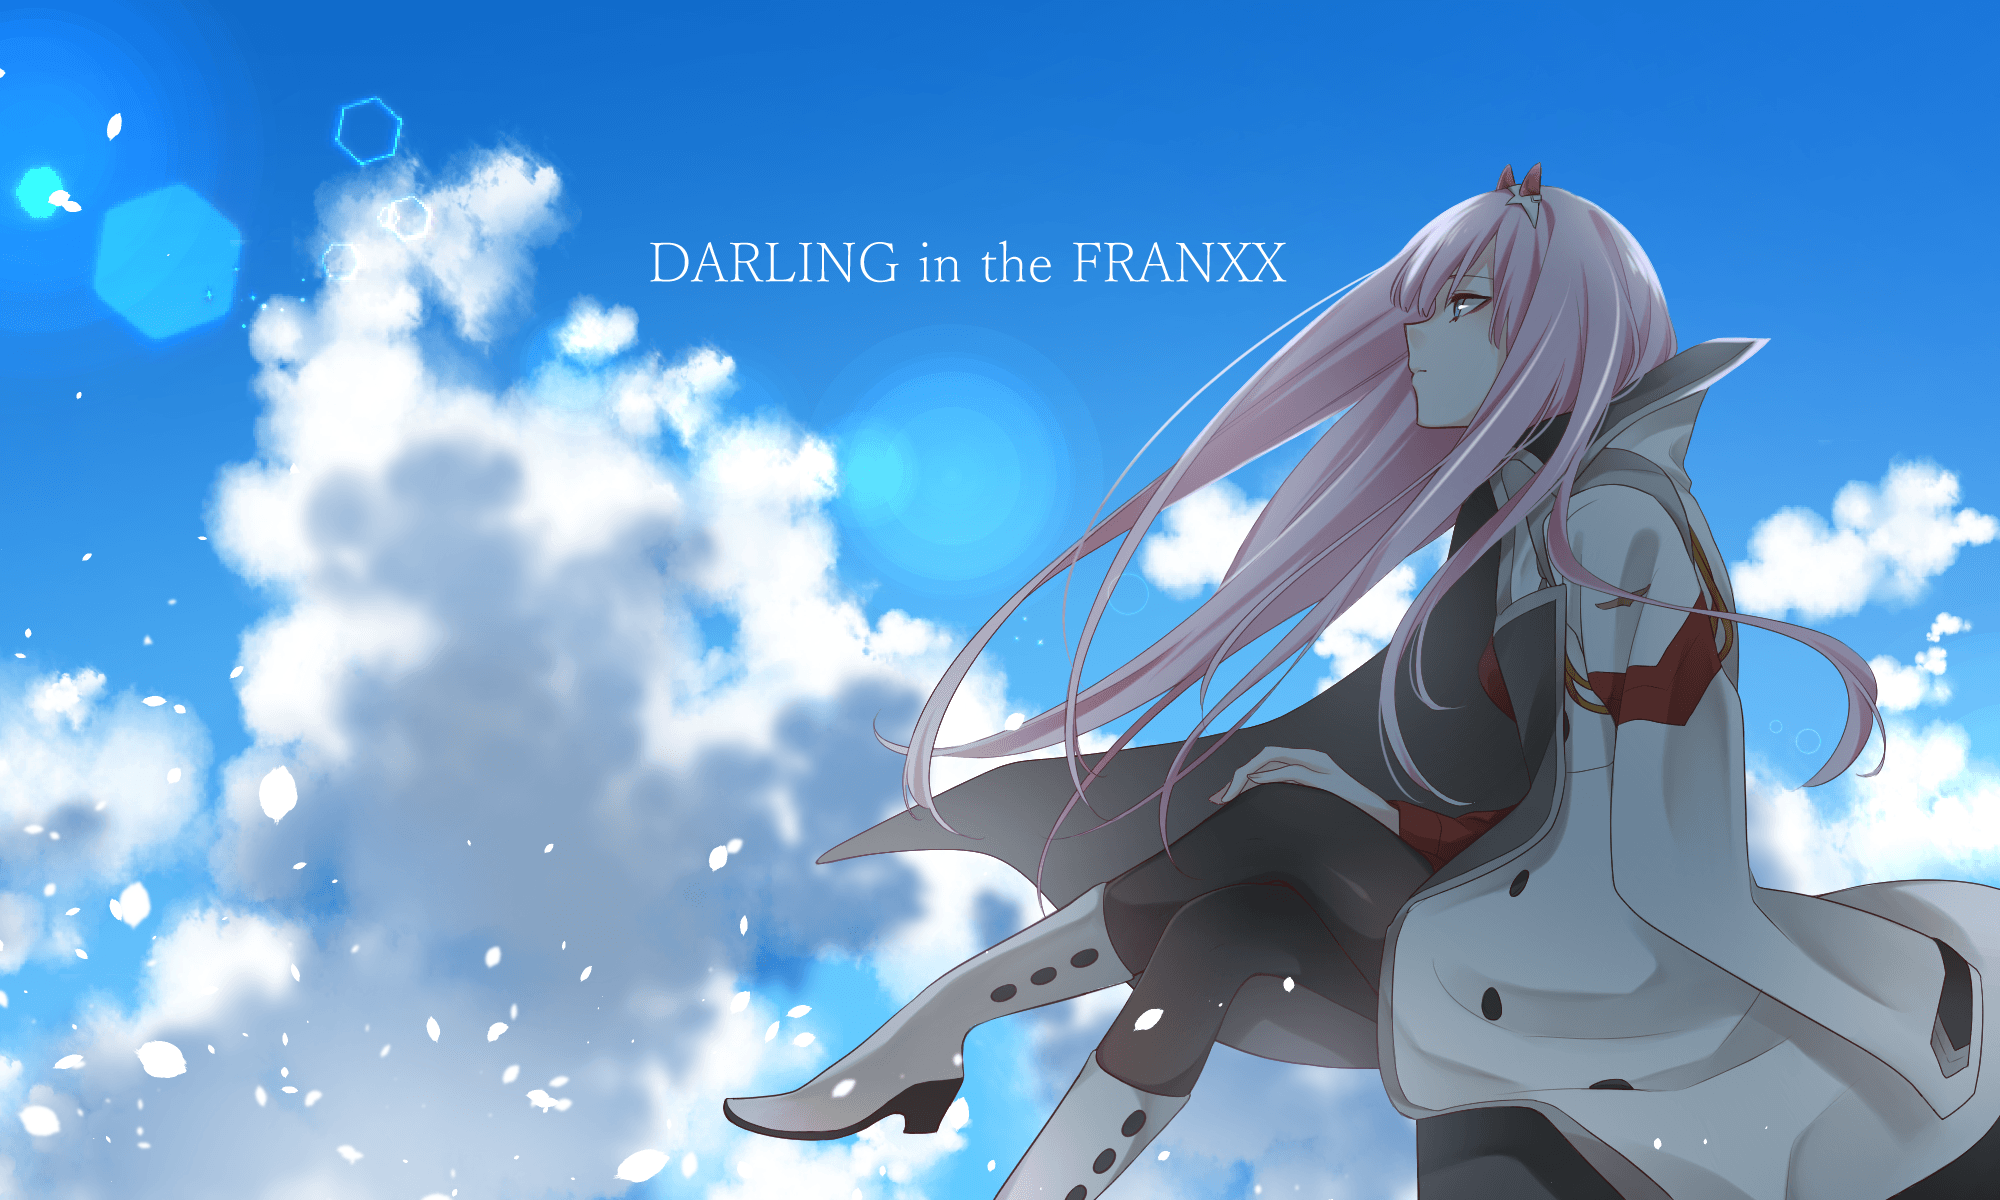 93230cd873 Darling In The Franxx Wallpapers - Wallpaper Cave